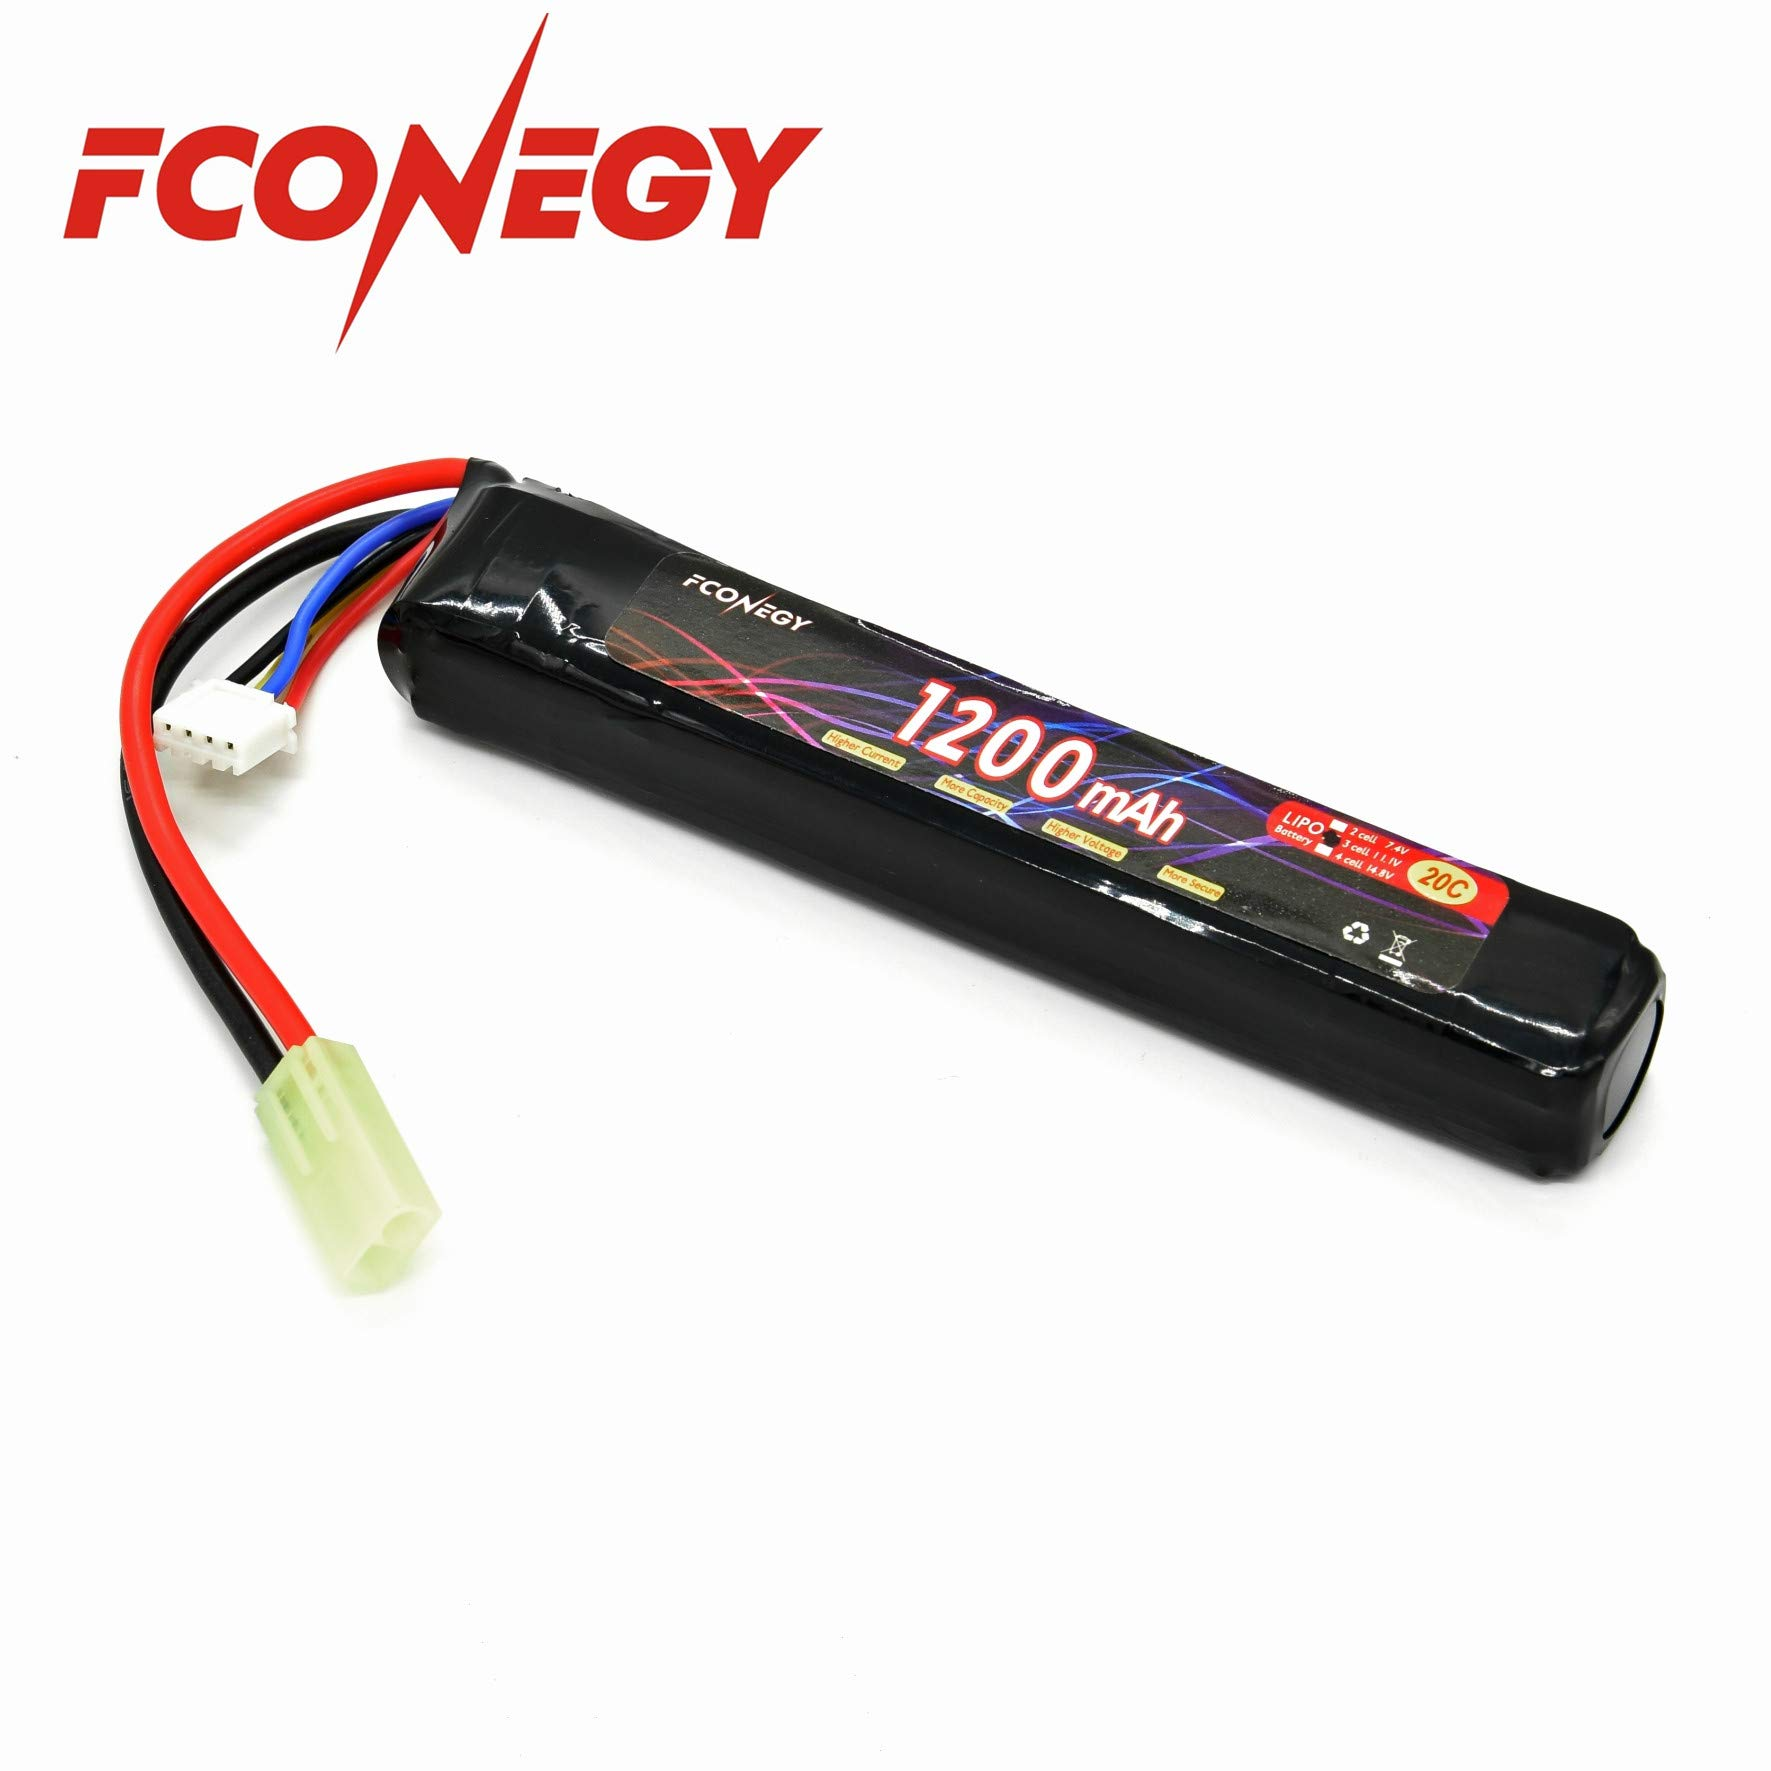 FCONEGY Lipo Battery 3S 11.1V 1200mAh 20C Triple Pack with Small Tamiya Plug for Airsoft Gun/Rifle